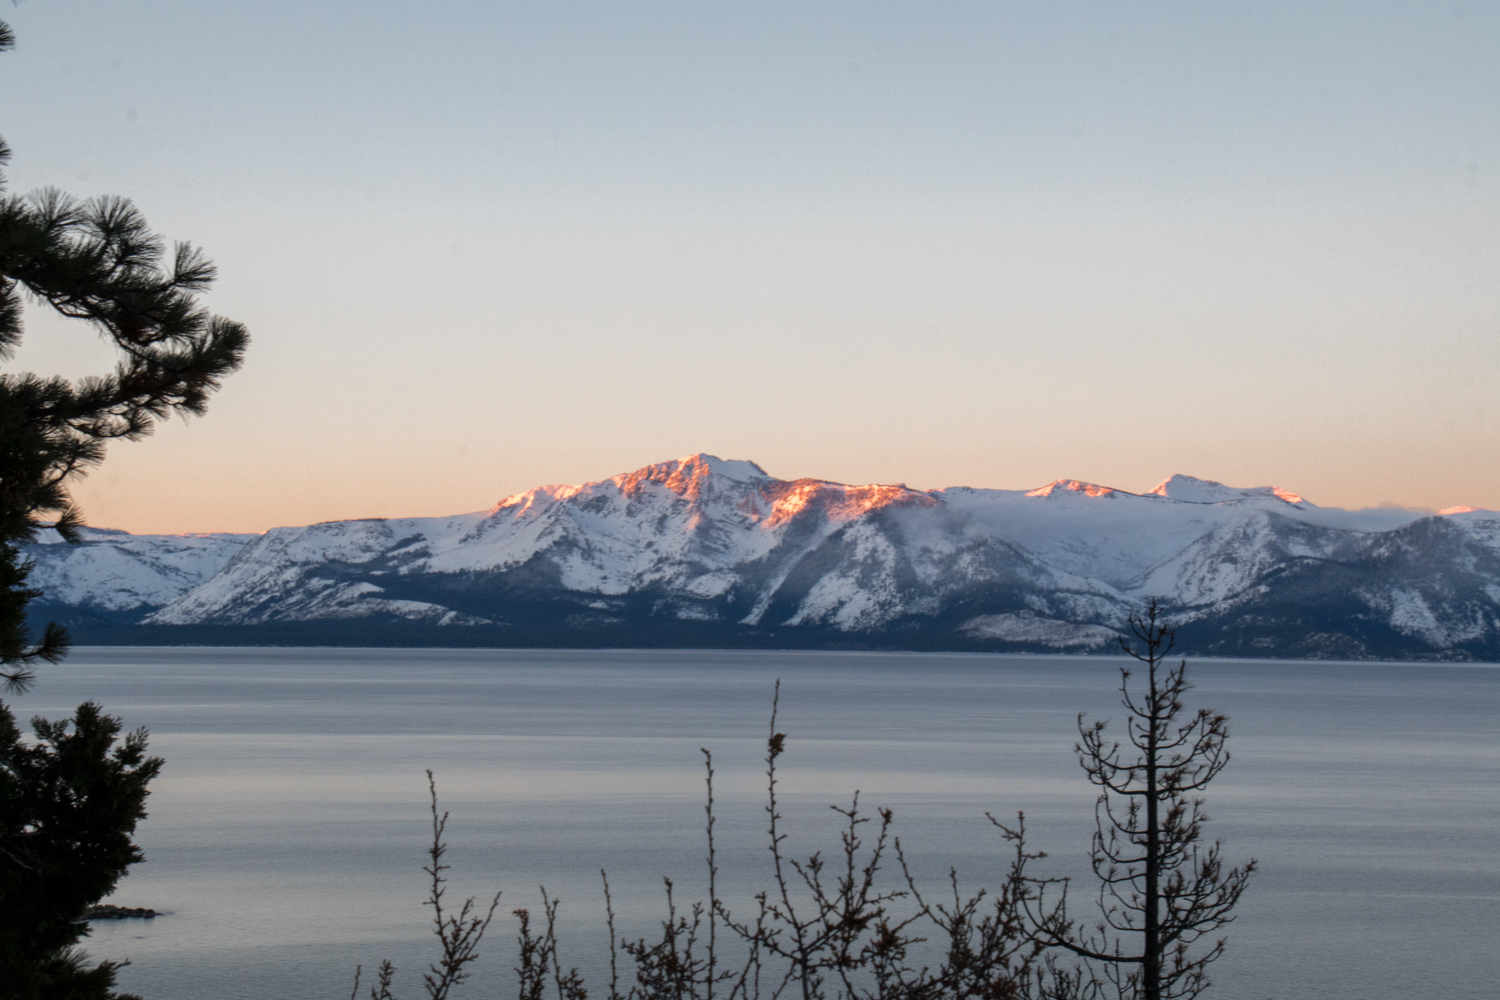 Cave Rock | Lake Tahoe | Snowy Weekend in Lake Tahoe | Catherine Chicotka